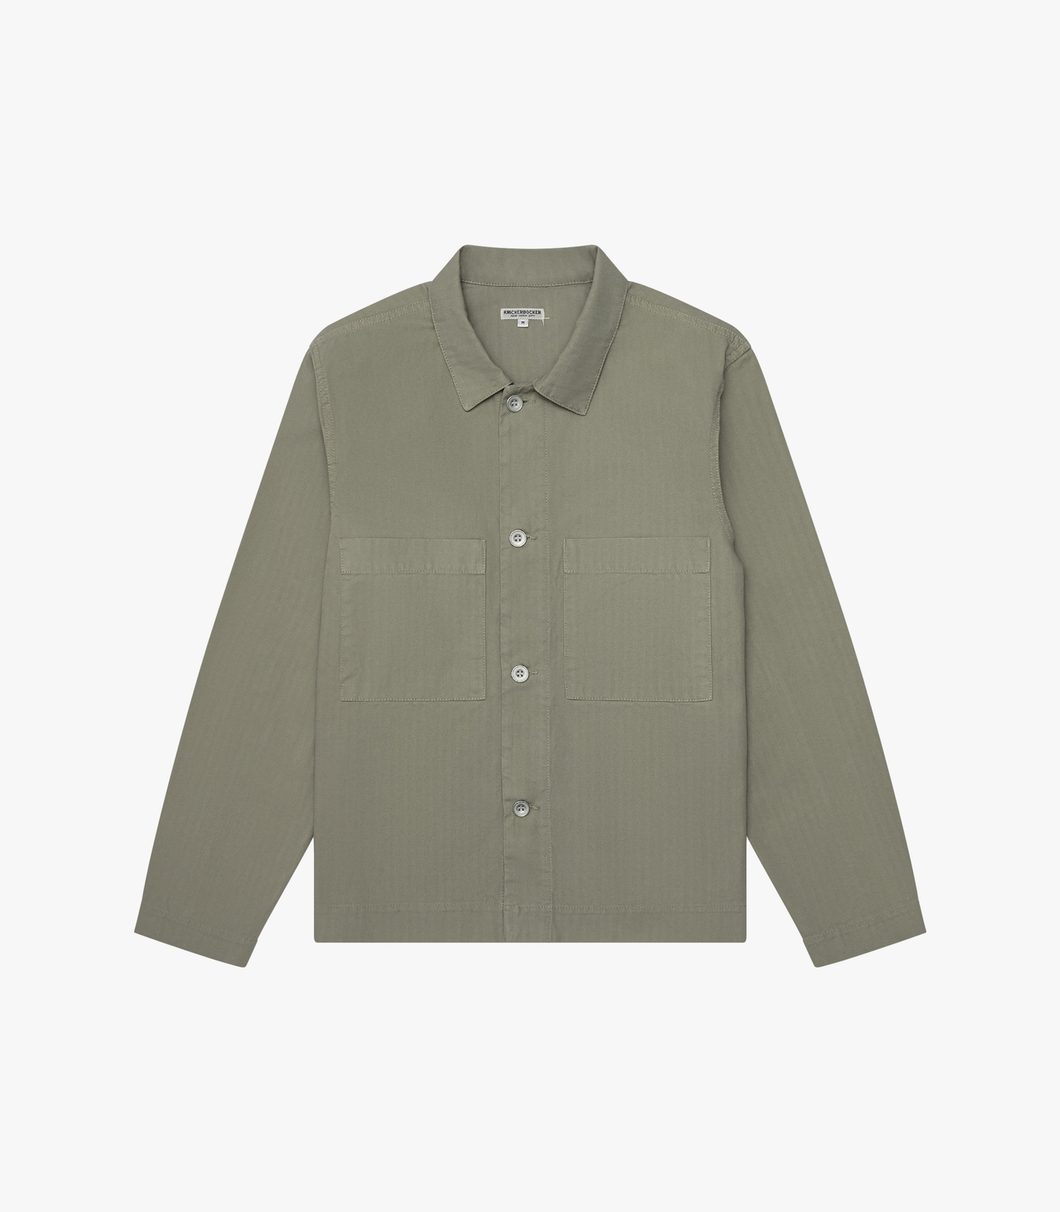 Knickerbocker - Chore Shirt Jacket - Military Olive